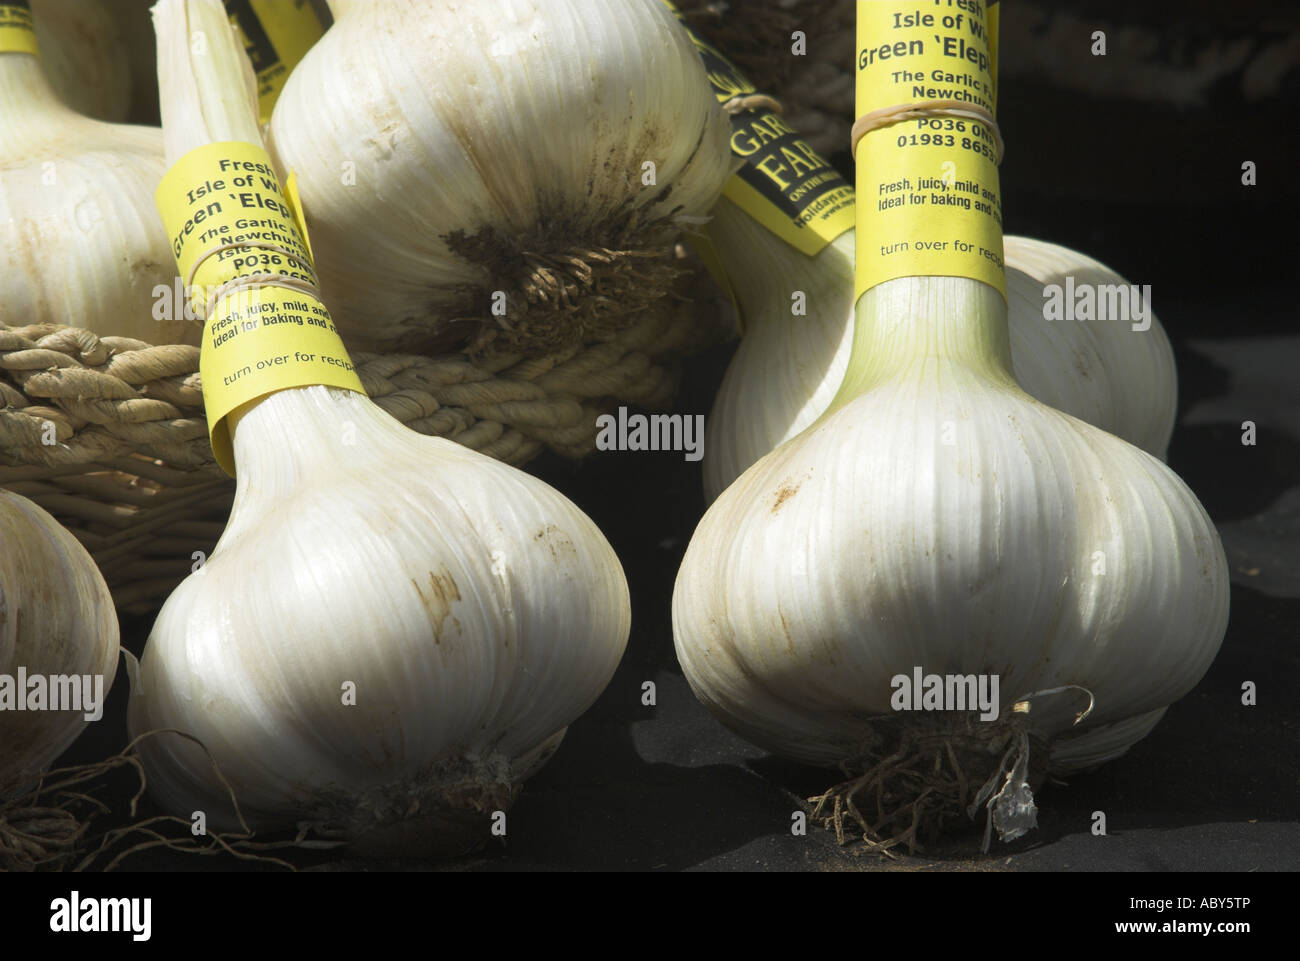 Isle of Wight grown elephant garlic at Winchester Farmers Market Hampshire UK - Stock Image